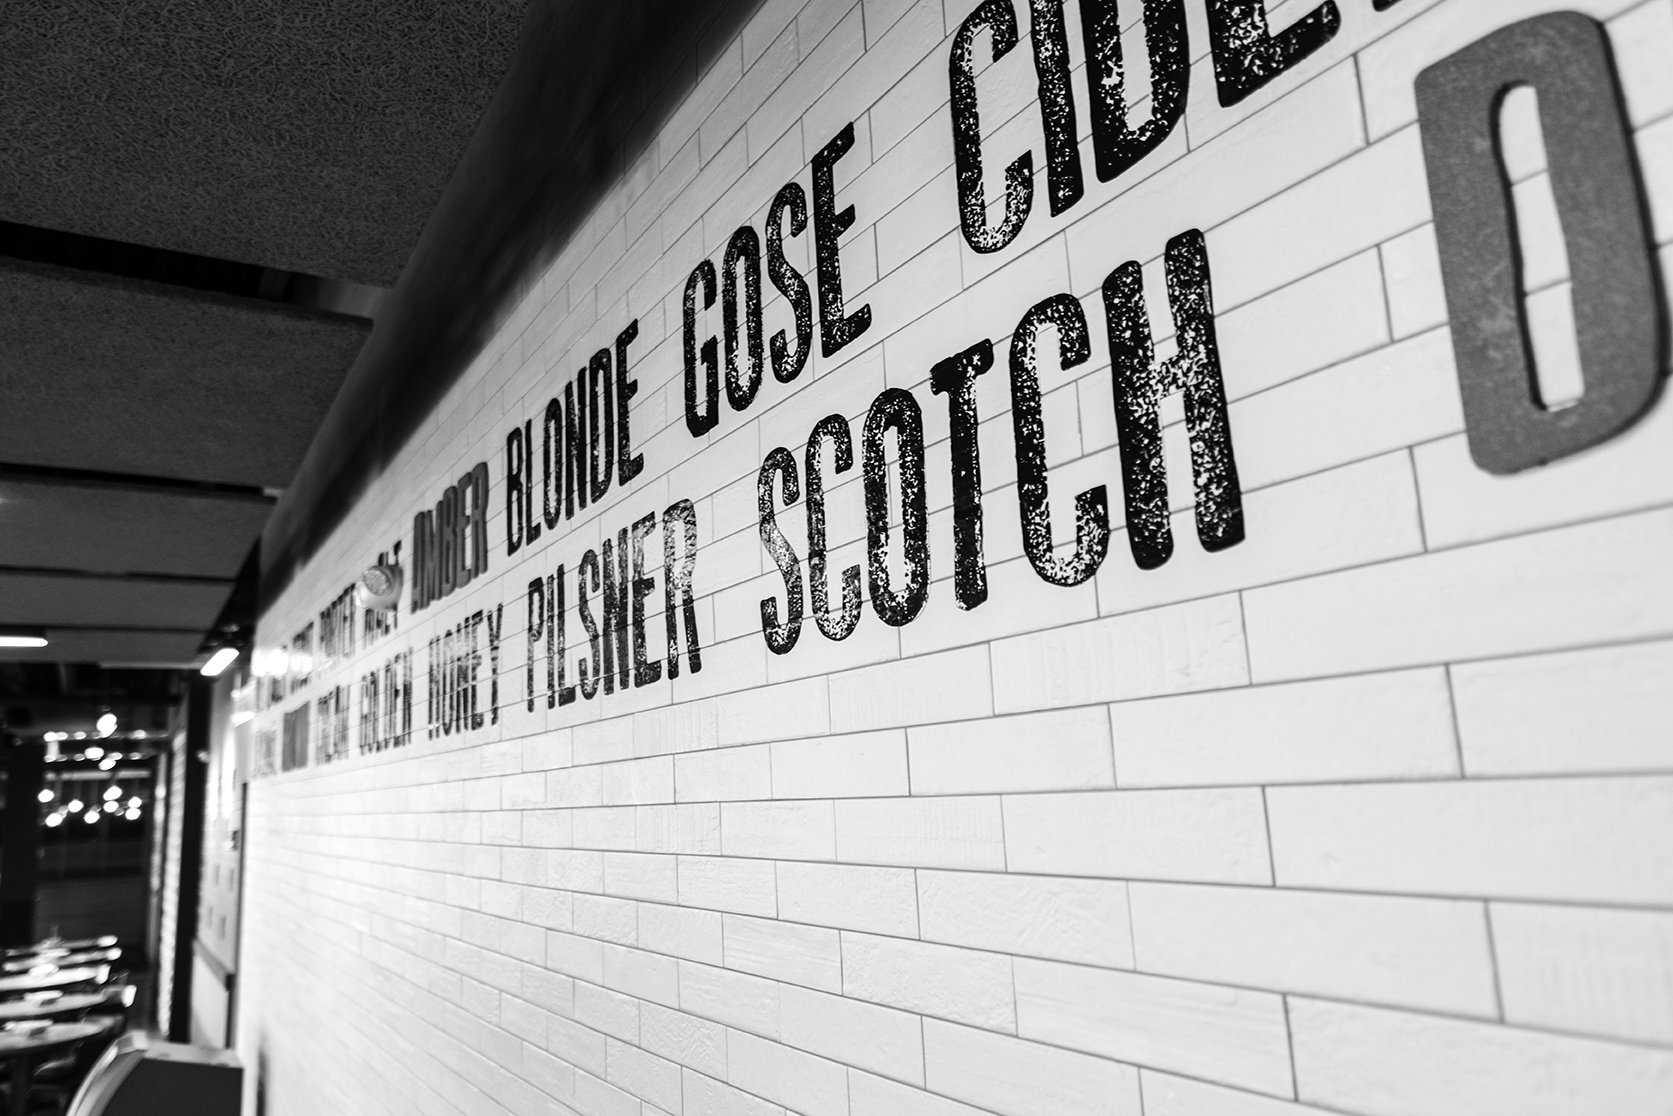 Close up of the graphic wall application of beer types shown in a black and white image